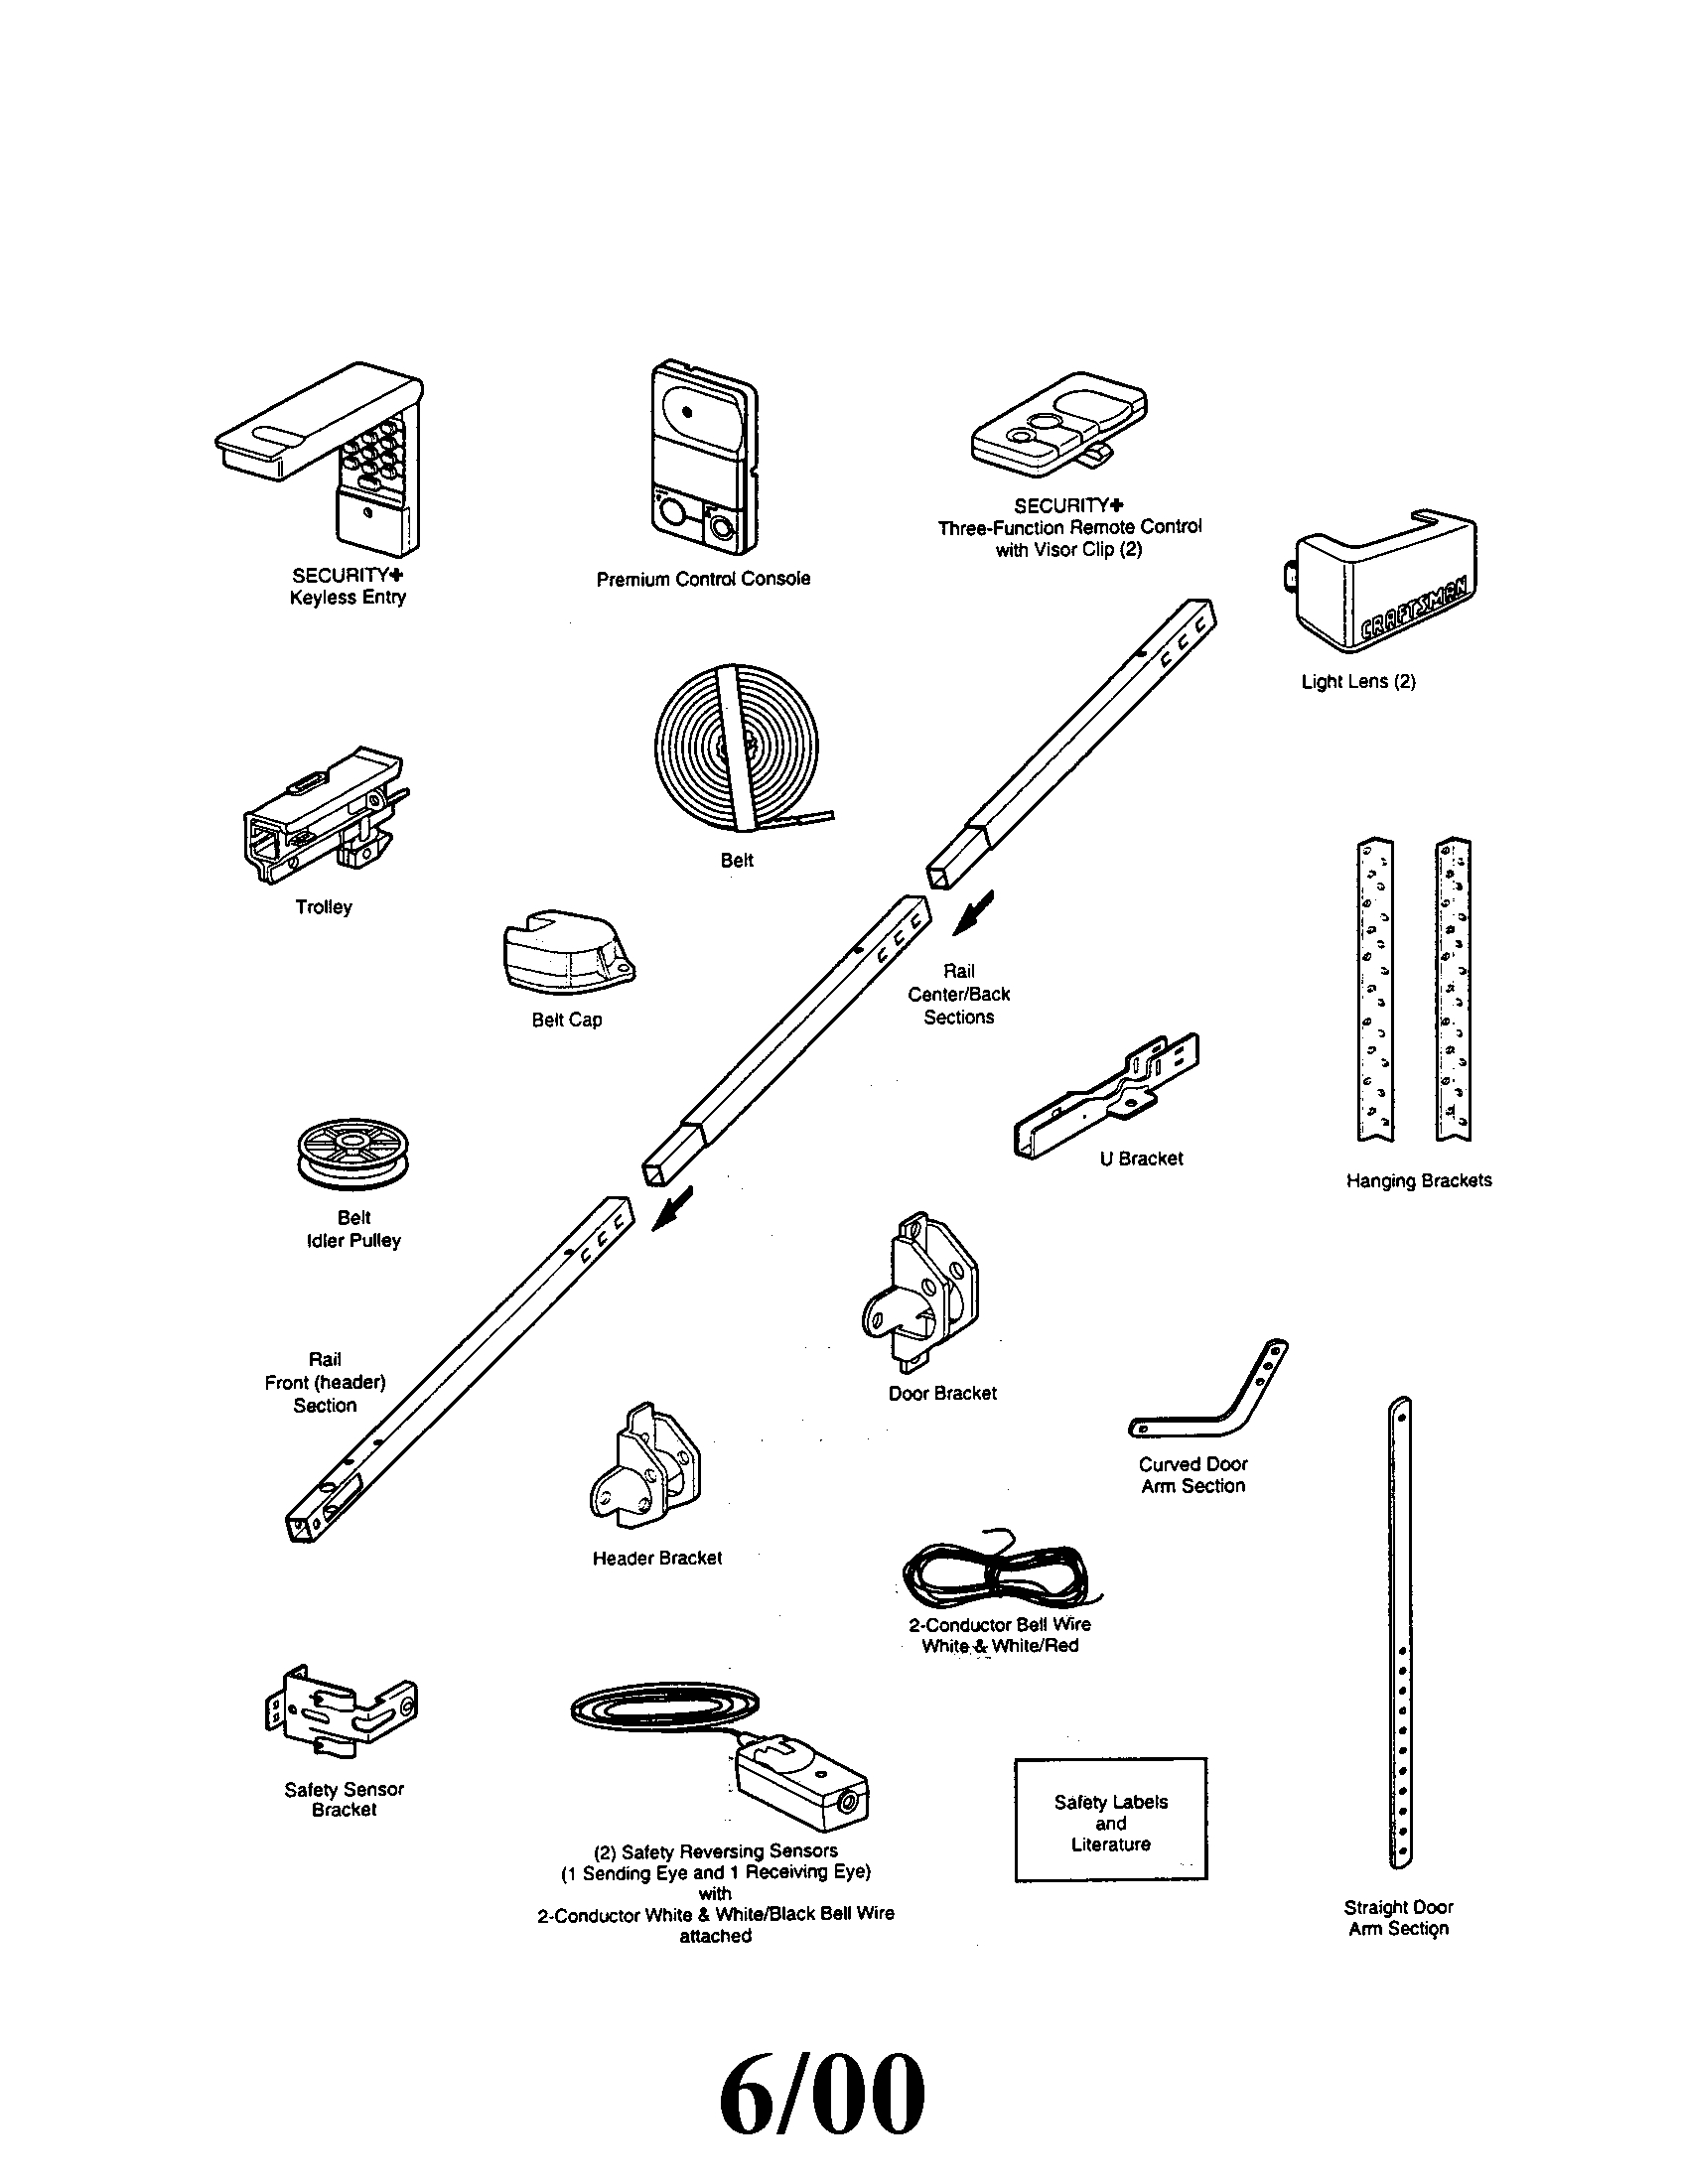 parts for garage door opener image collections french door within genie garage door opener parts diagram genie garage door sensor wiring diagram gandul 45 77 79 119 craftsman garage door opener sensor wiring diagram at crackthecode.co